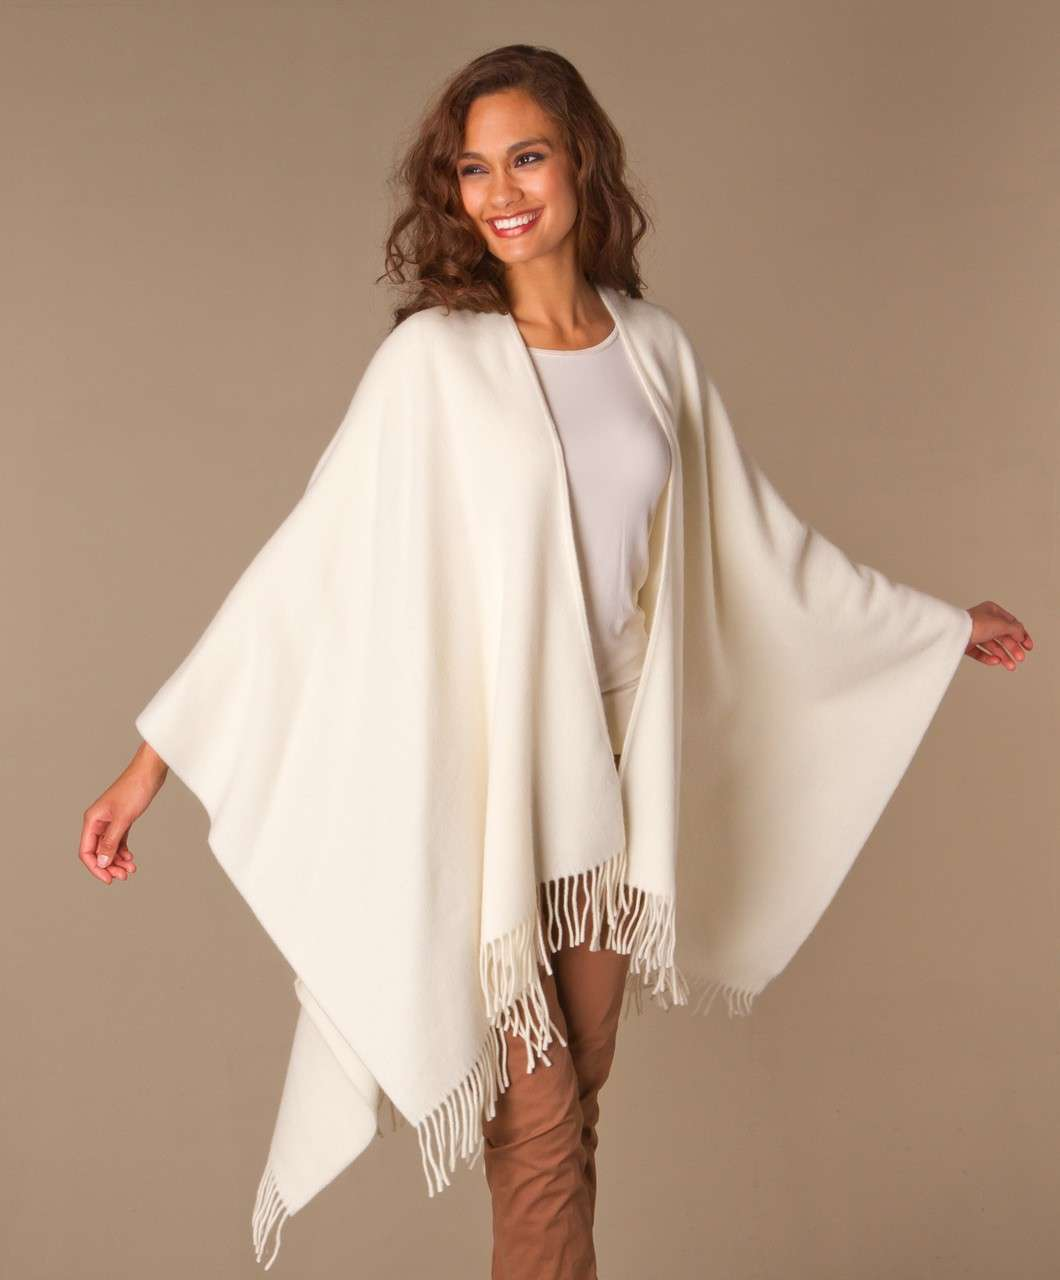 Poncho e look total white